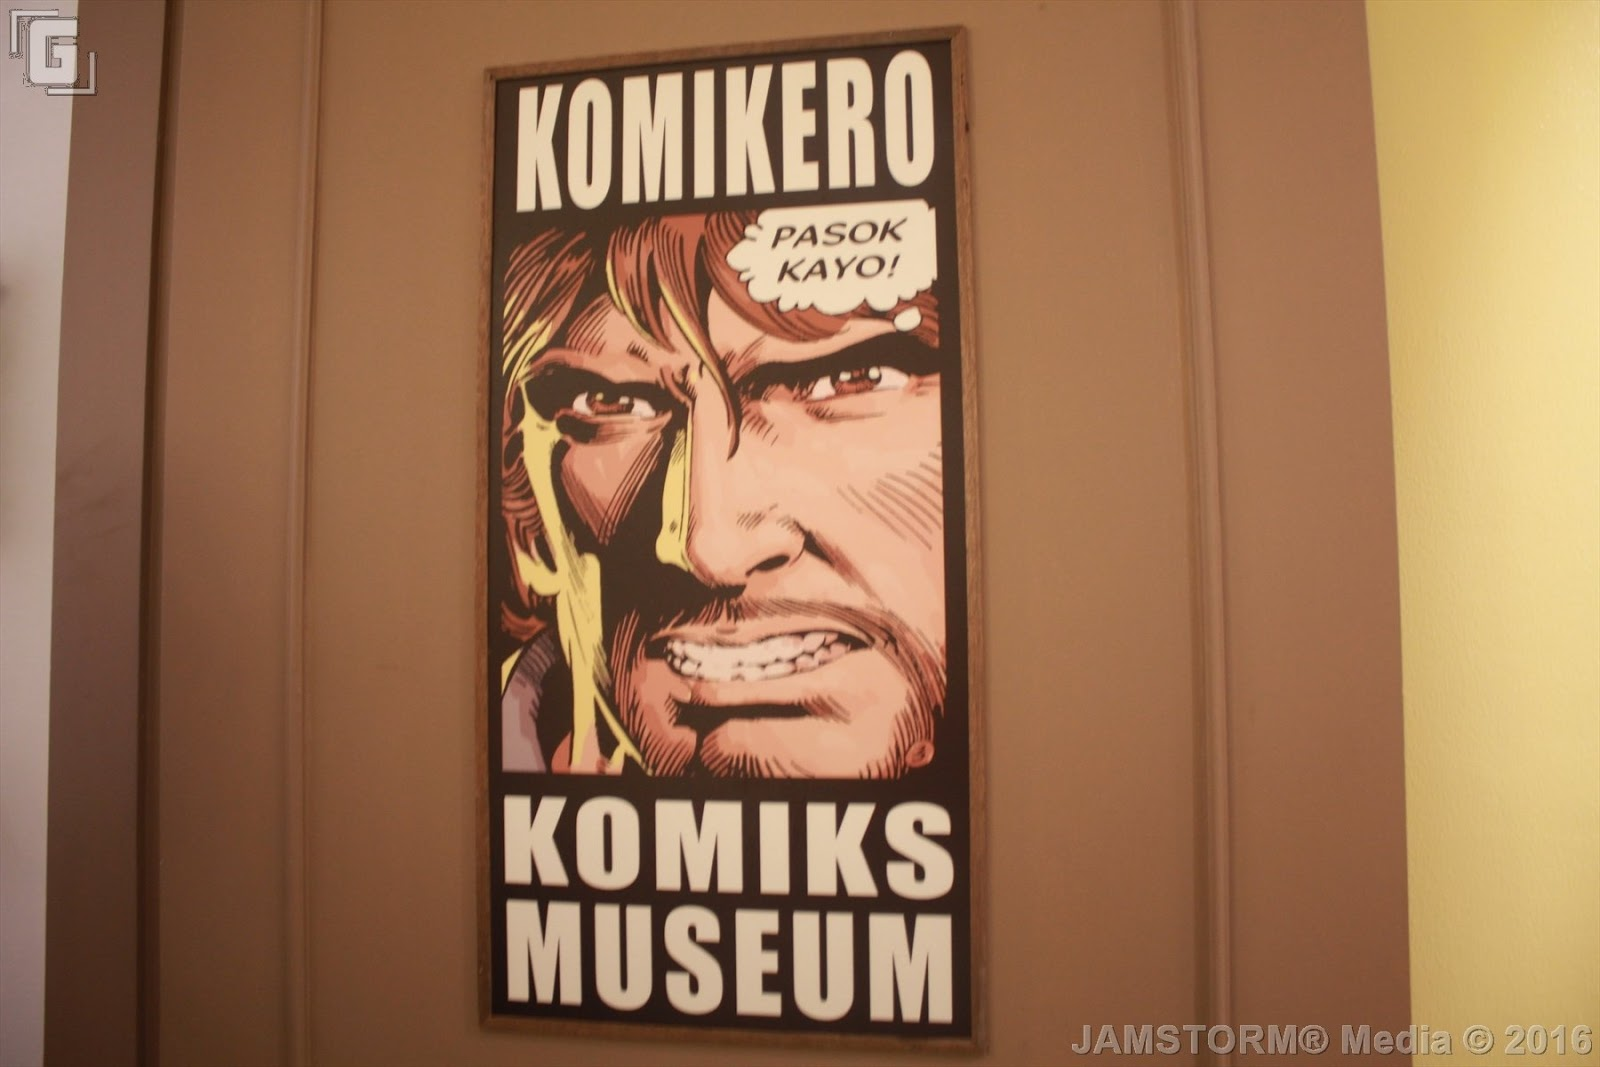 08142016 The Komikero Komiks Museum Was One Of Gerry Alanguilans Dreams In Putting Up A Place Where People Would Remind Everyone How